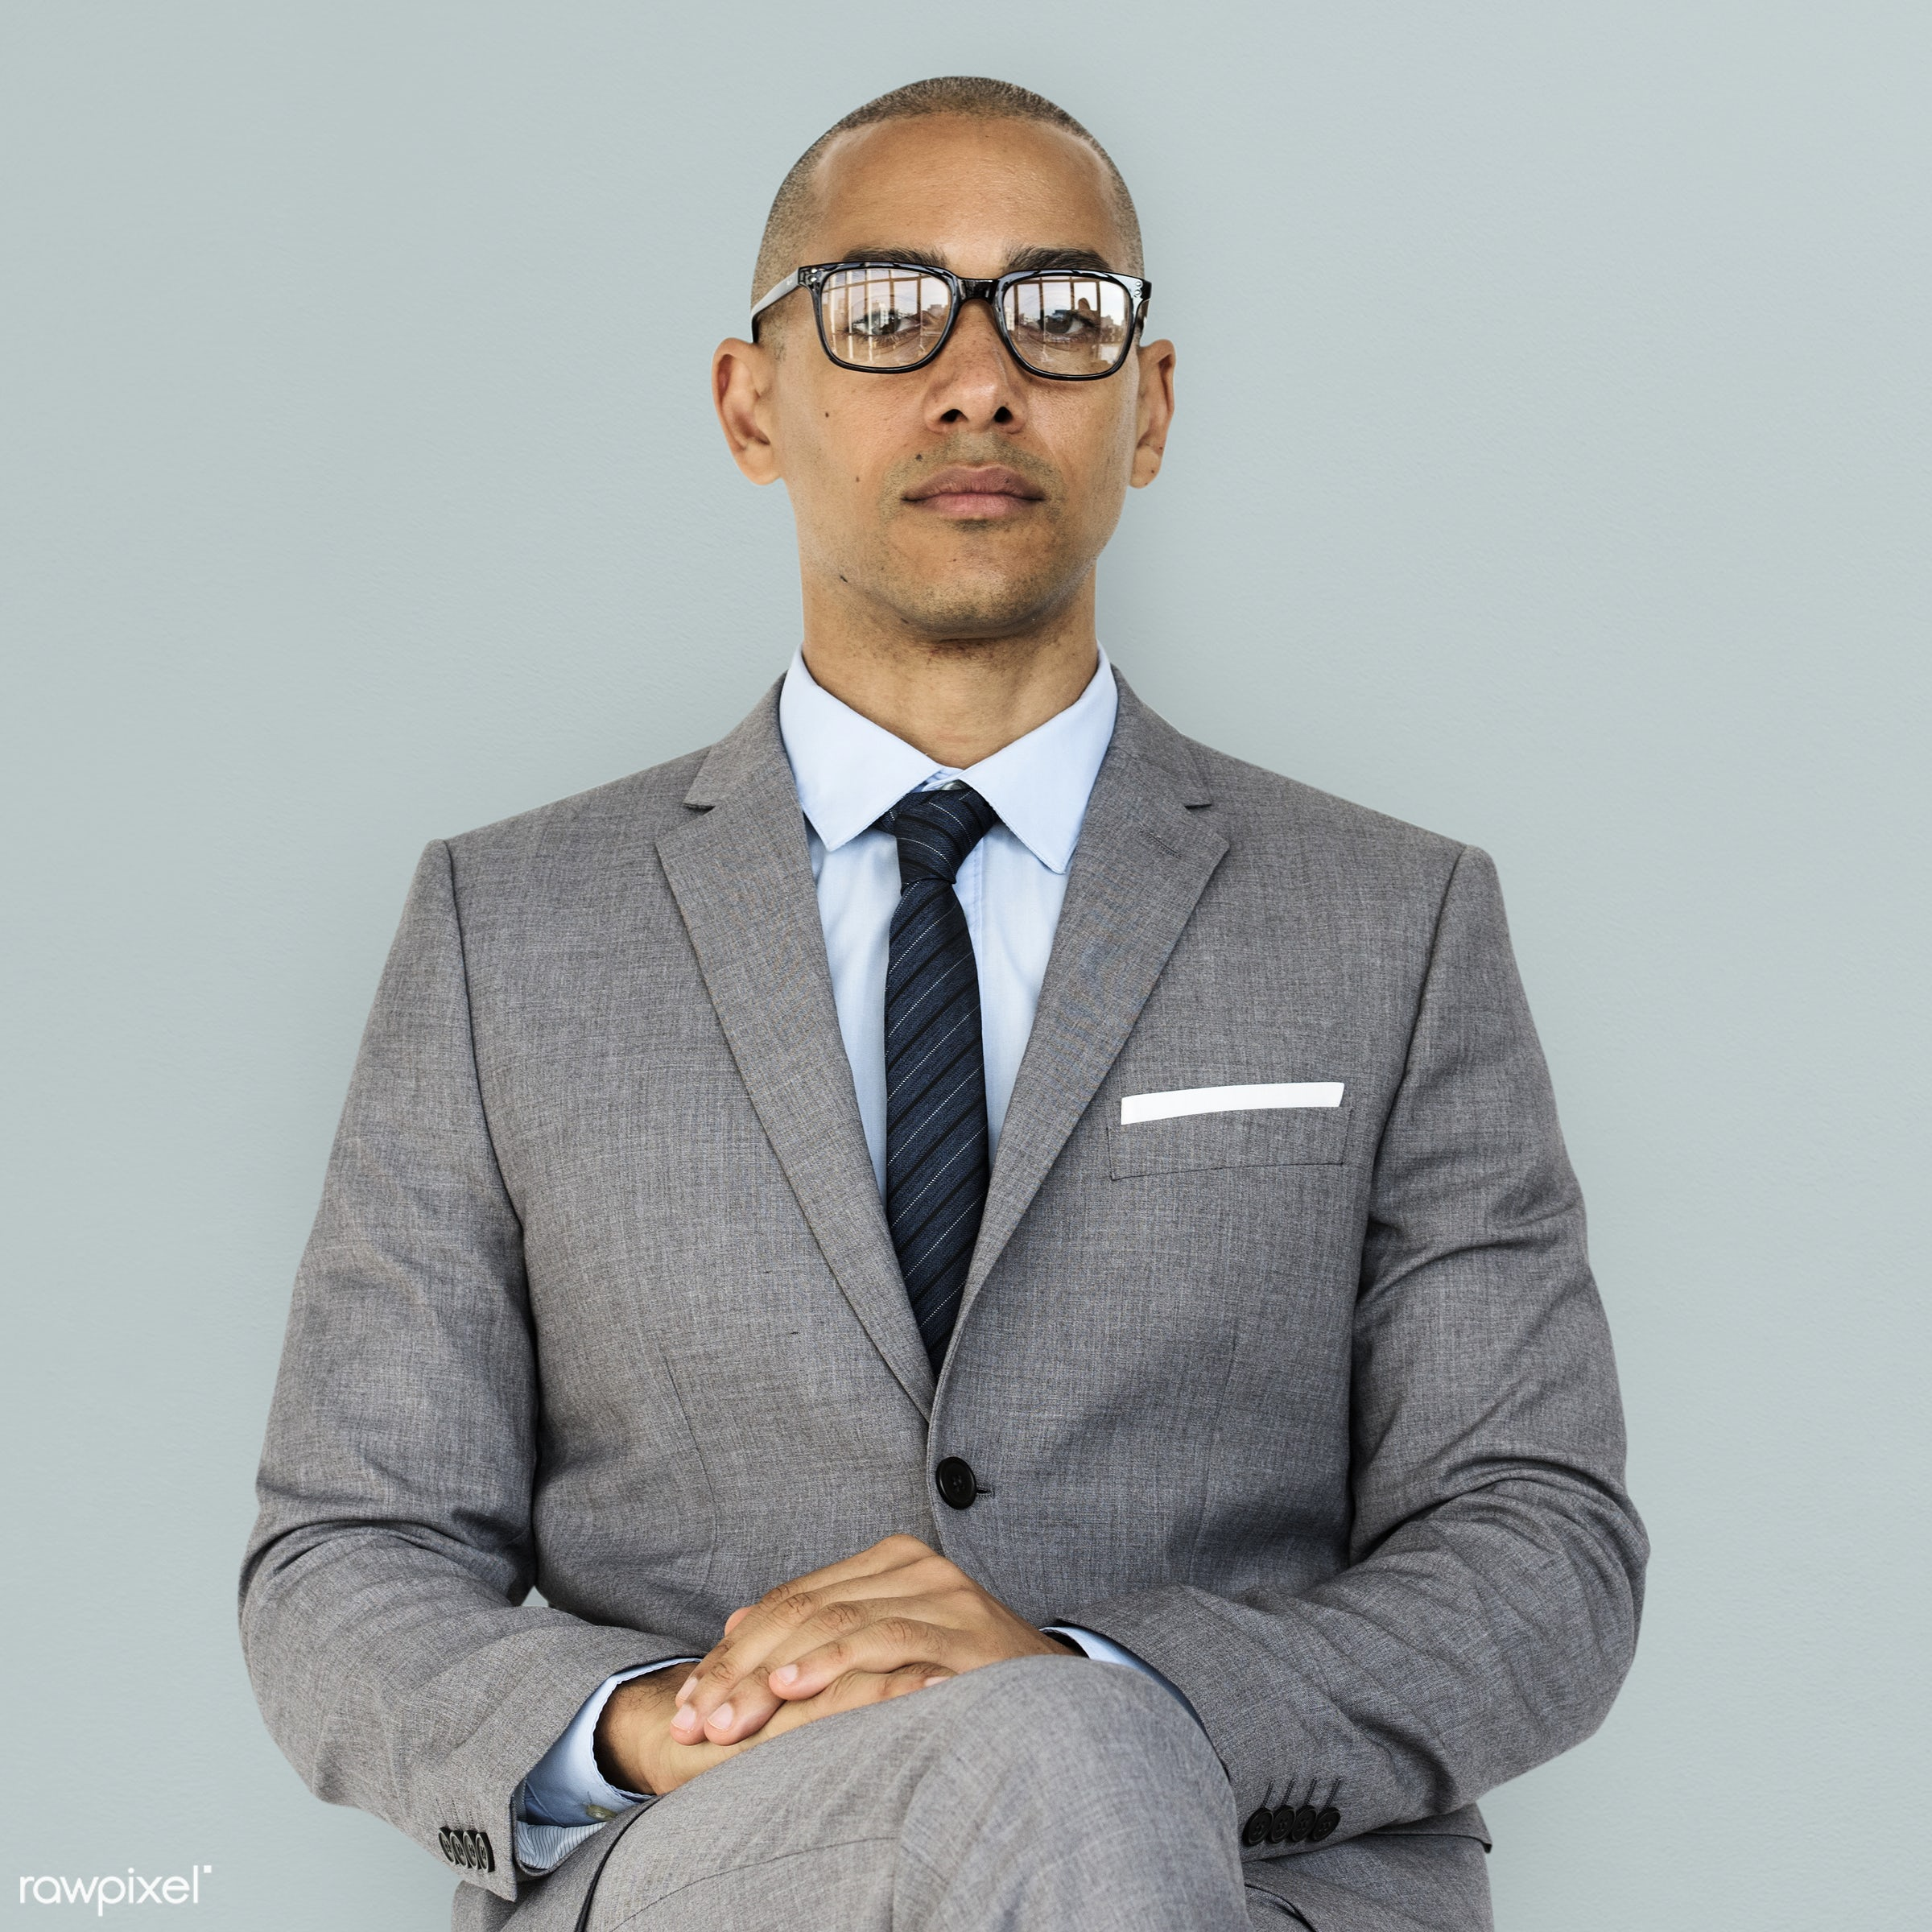 expression, studio, face, person, glasses, courage, carefree, people, business, businessman, fresh, casual, grey, mixed race...